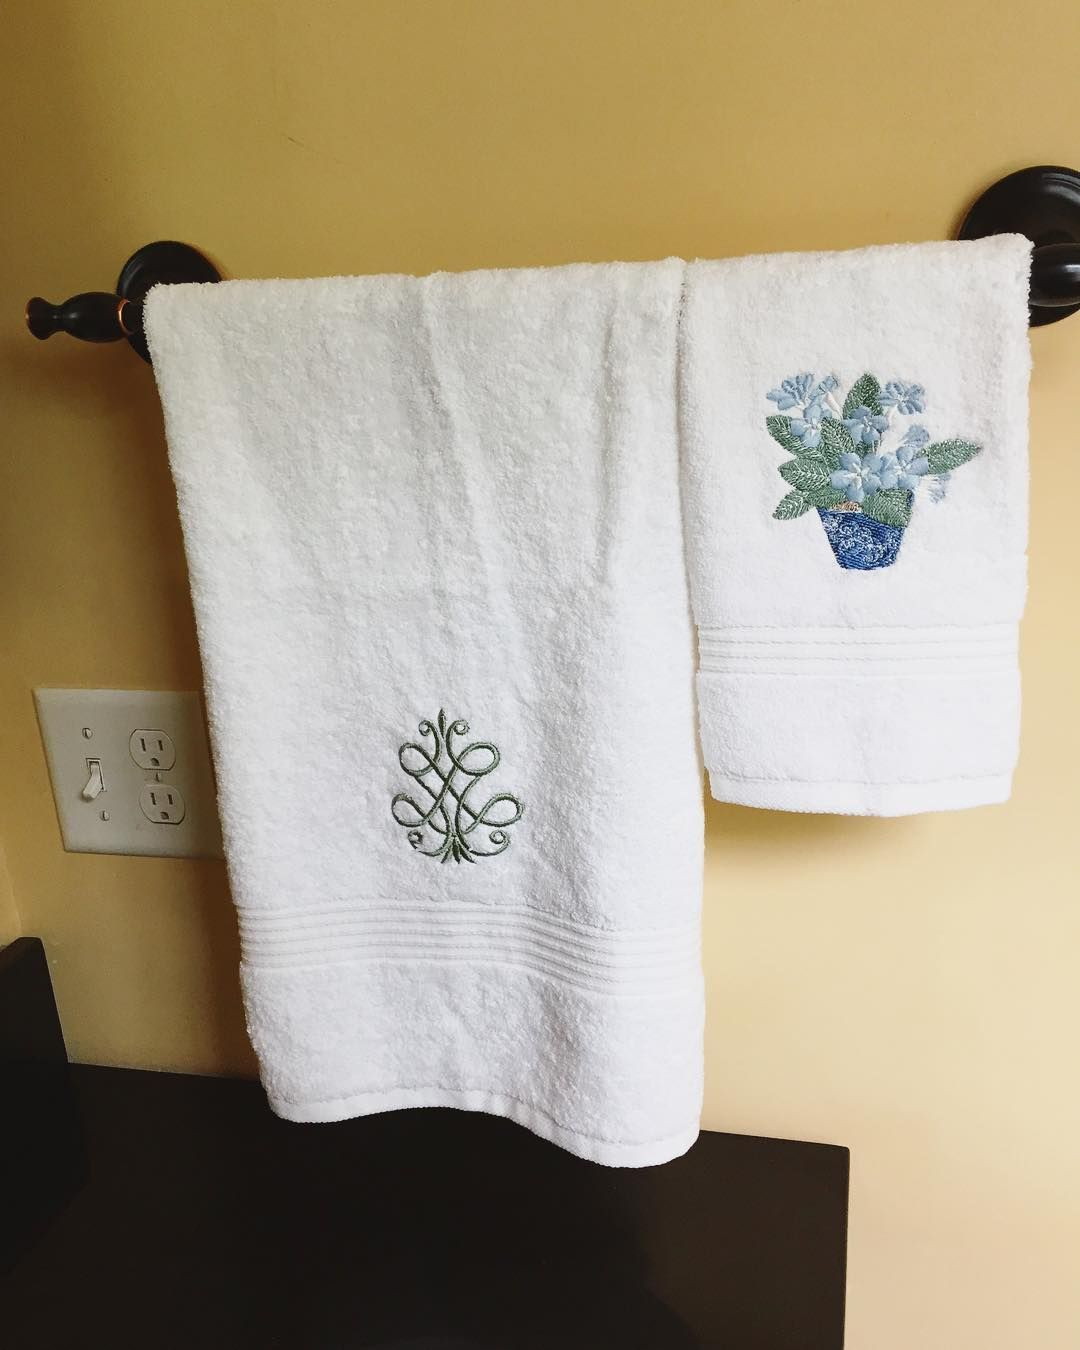 moving into a new home? these embroidered guest towels are the